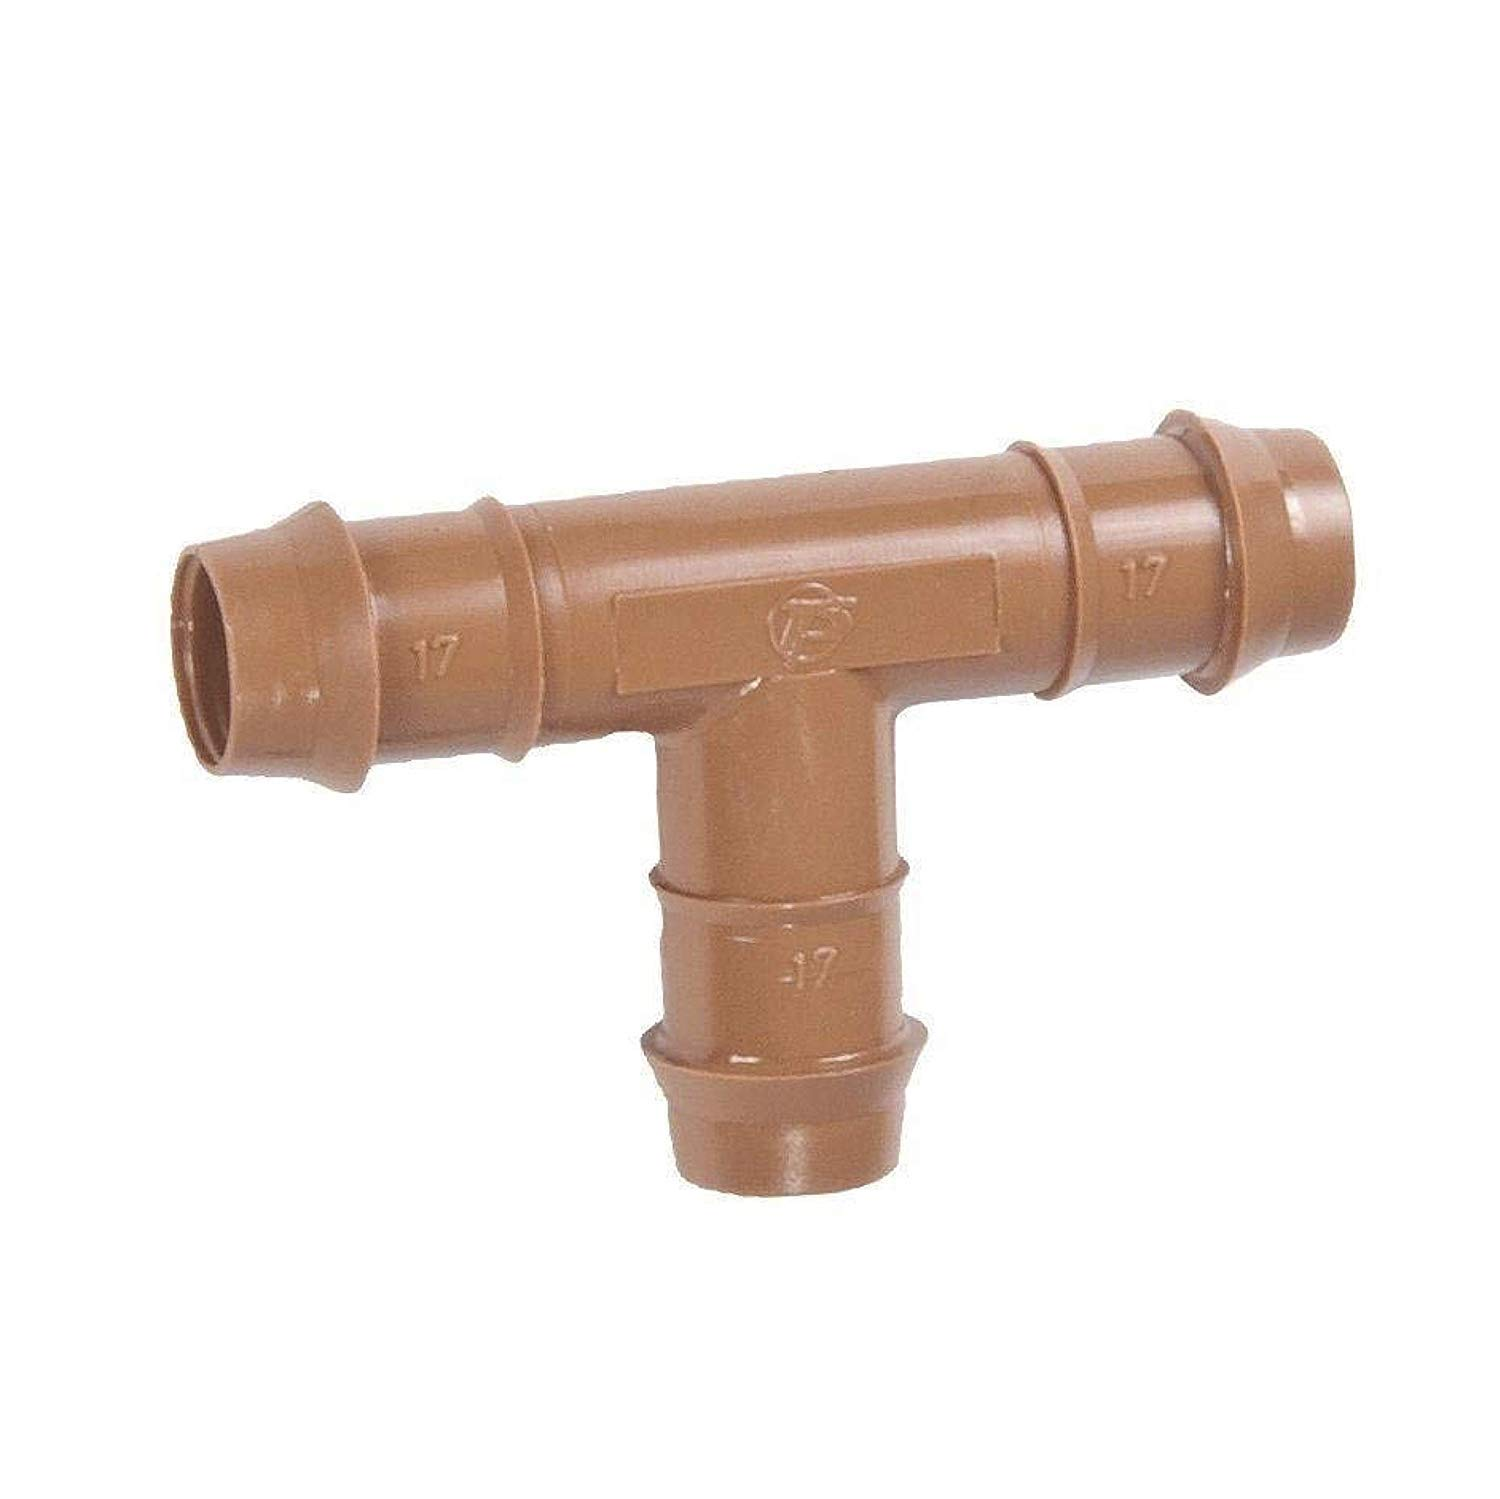 1//2 Inch Drip Irrigation Barbed Tee Connector Fitting Fits of 17mm.600 ID Drip Tubing Fits of 17mm.600 ID Drip Tubing DIG 10-Pack